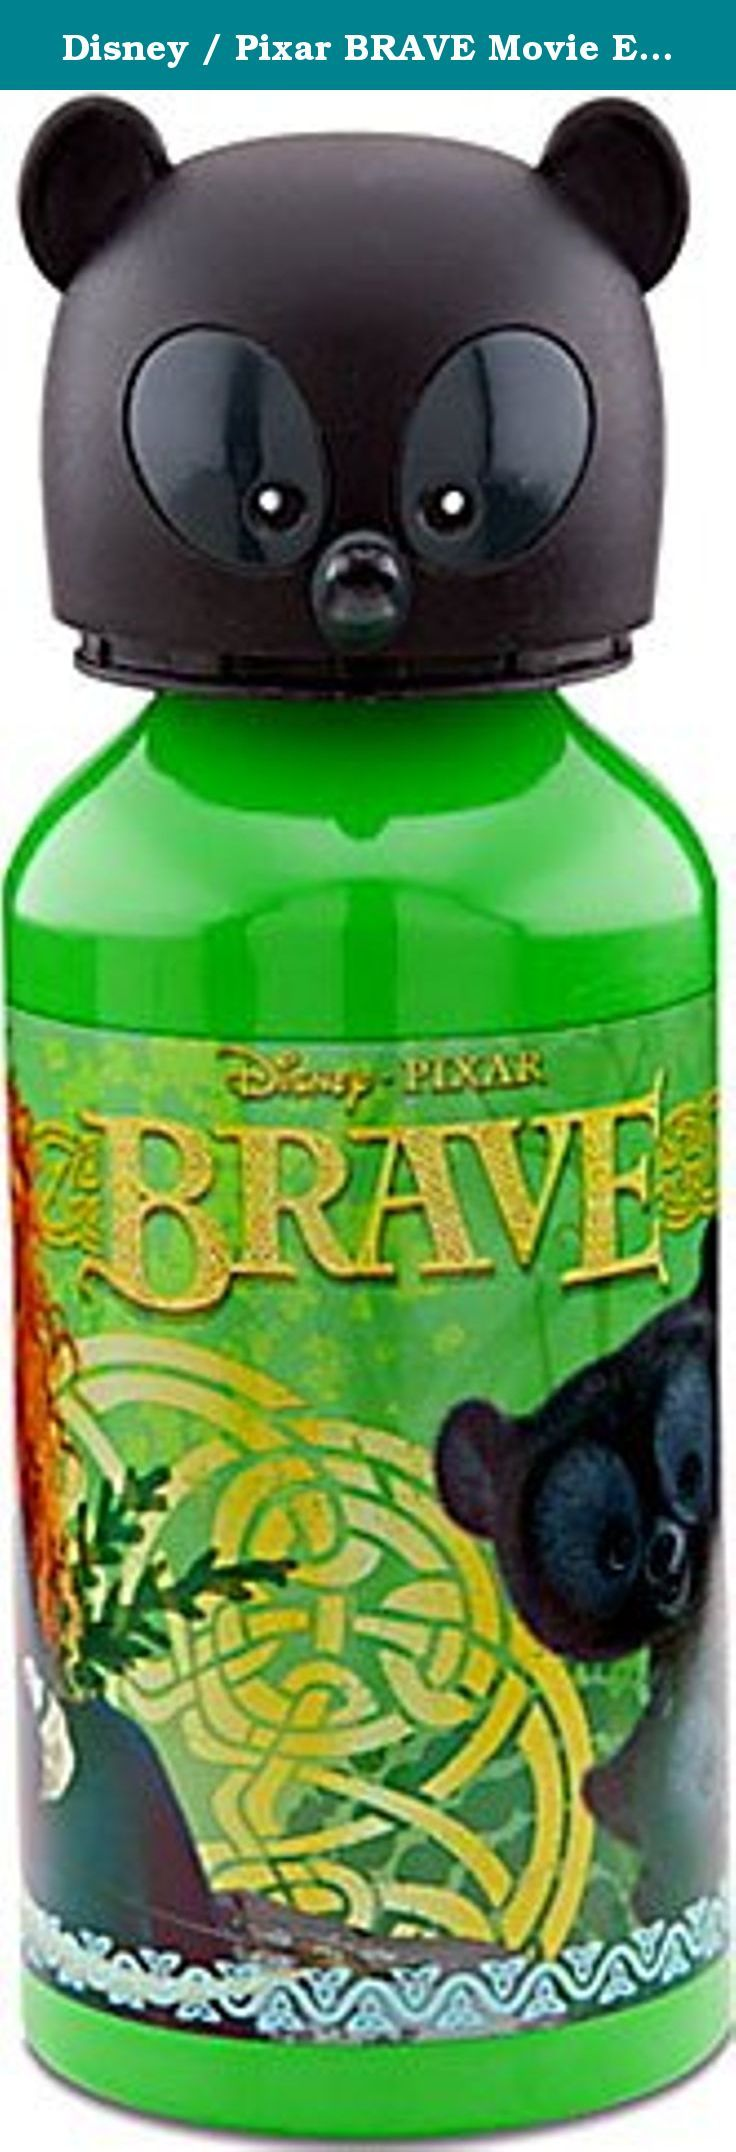 Disney / Pixar BRAVE Movie Exclusive Aluminum Water Bottle. Quench your thirst for adventure with our Aluminum Brave Water Bottle! Merida is joined by three bear cubs on this environmentally friendly water bottle featuring a bear cub as the screwtop cap.